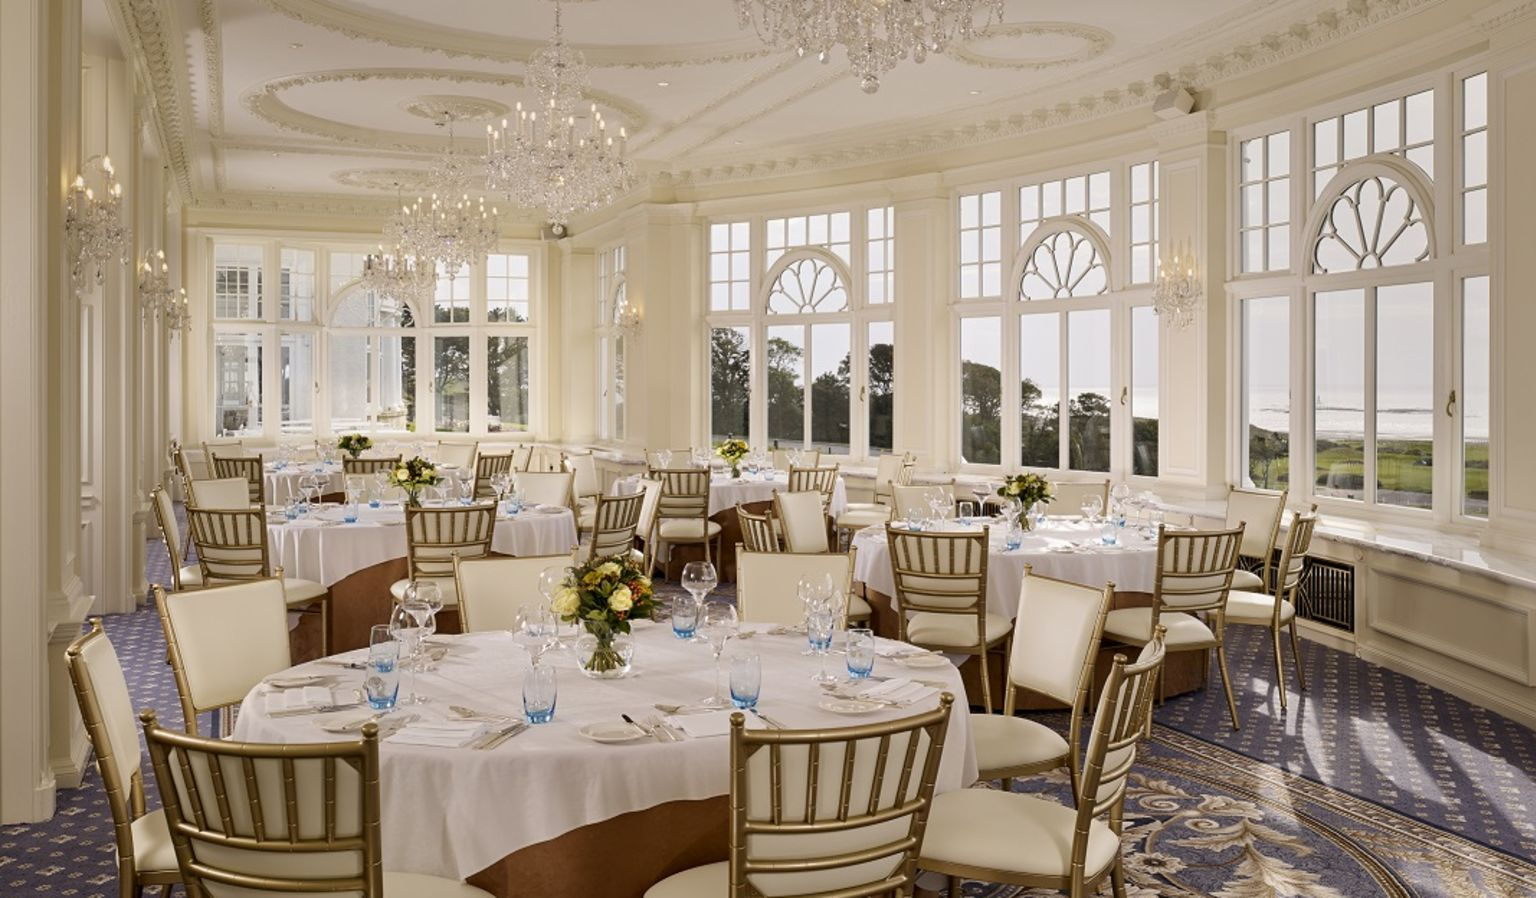 Crystal Ballroom with Tables Set for Dinner